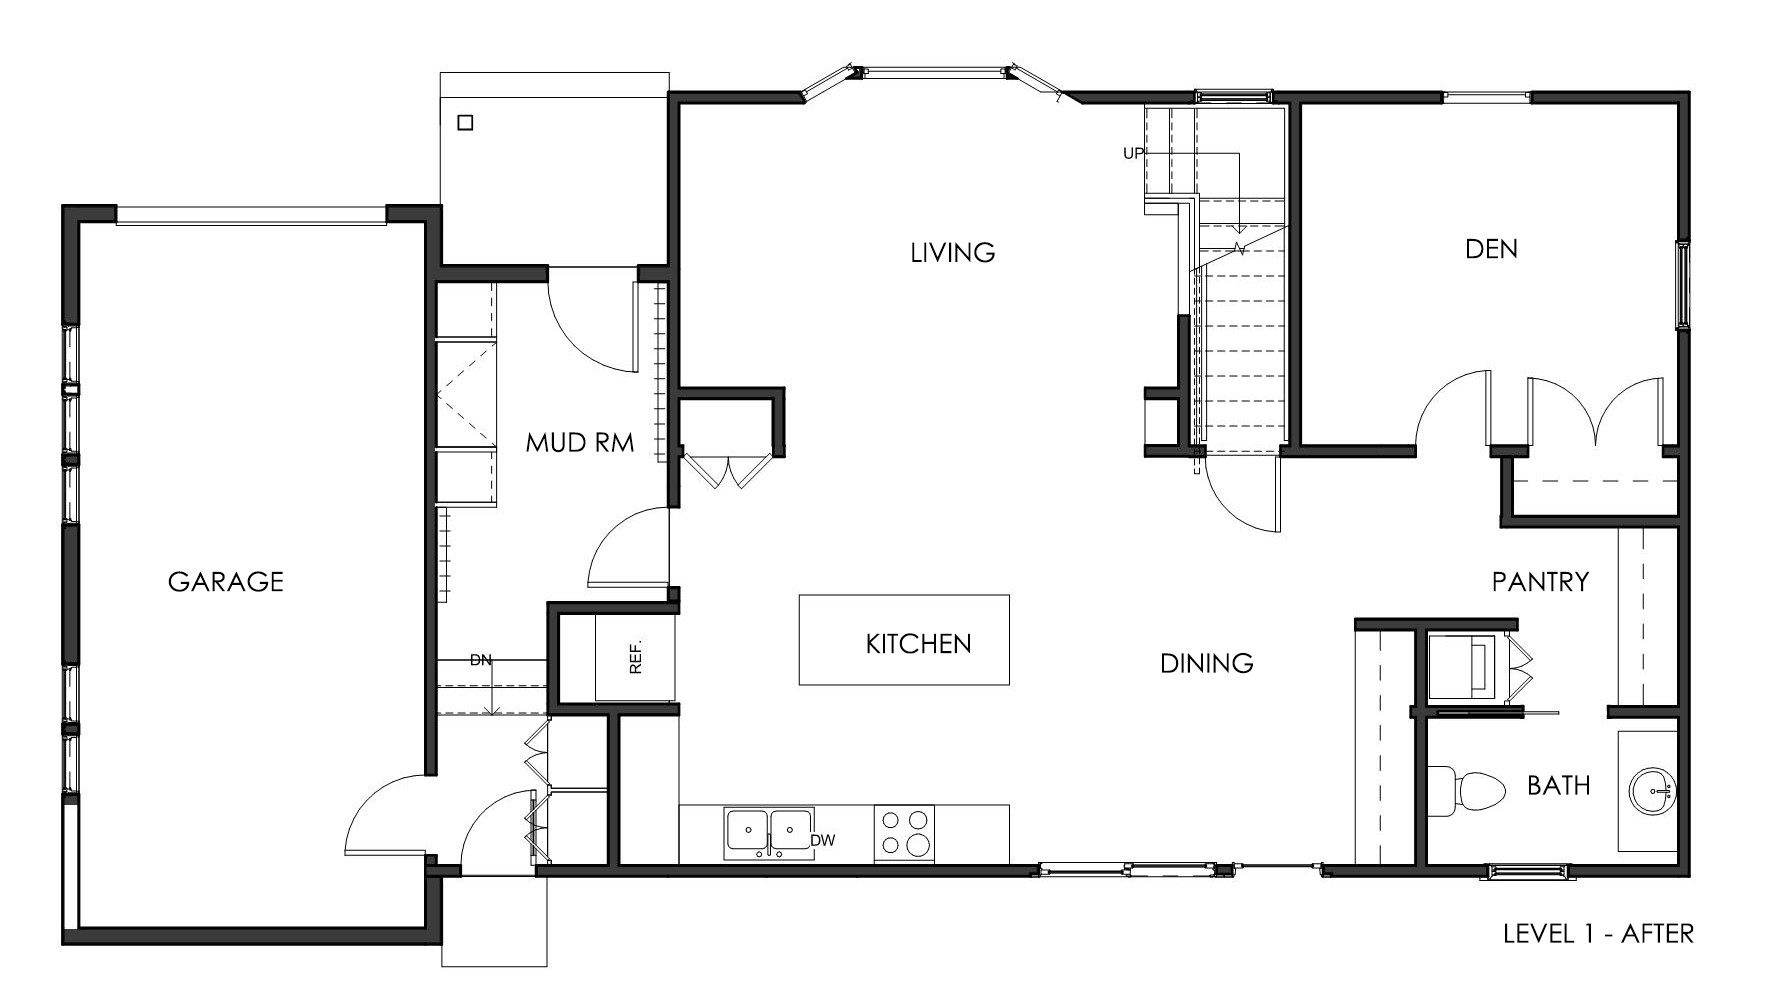 AFTER_South End House_Level 1.jpg